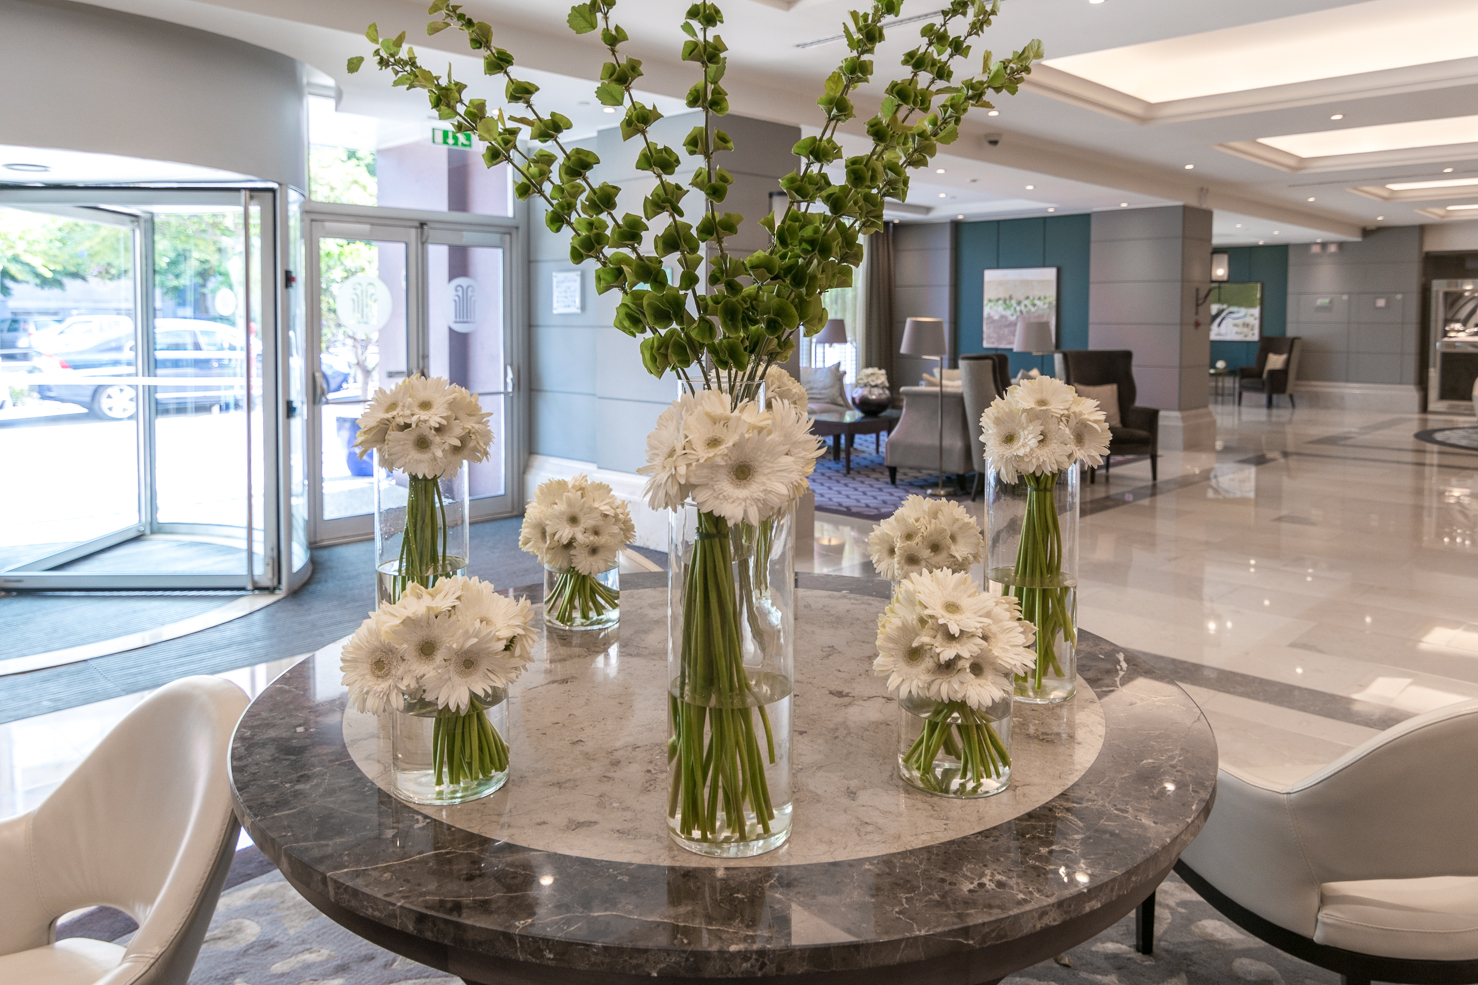 Corinthia Hotel A Luxury Masterpiece In Lively Lisbon